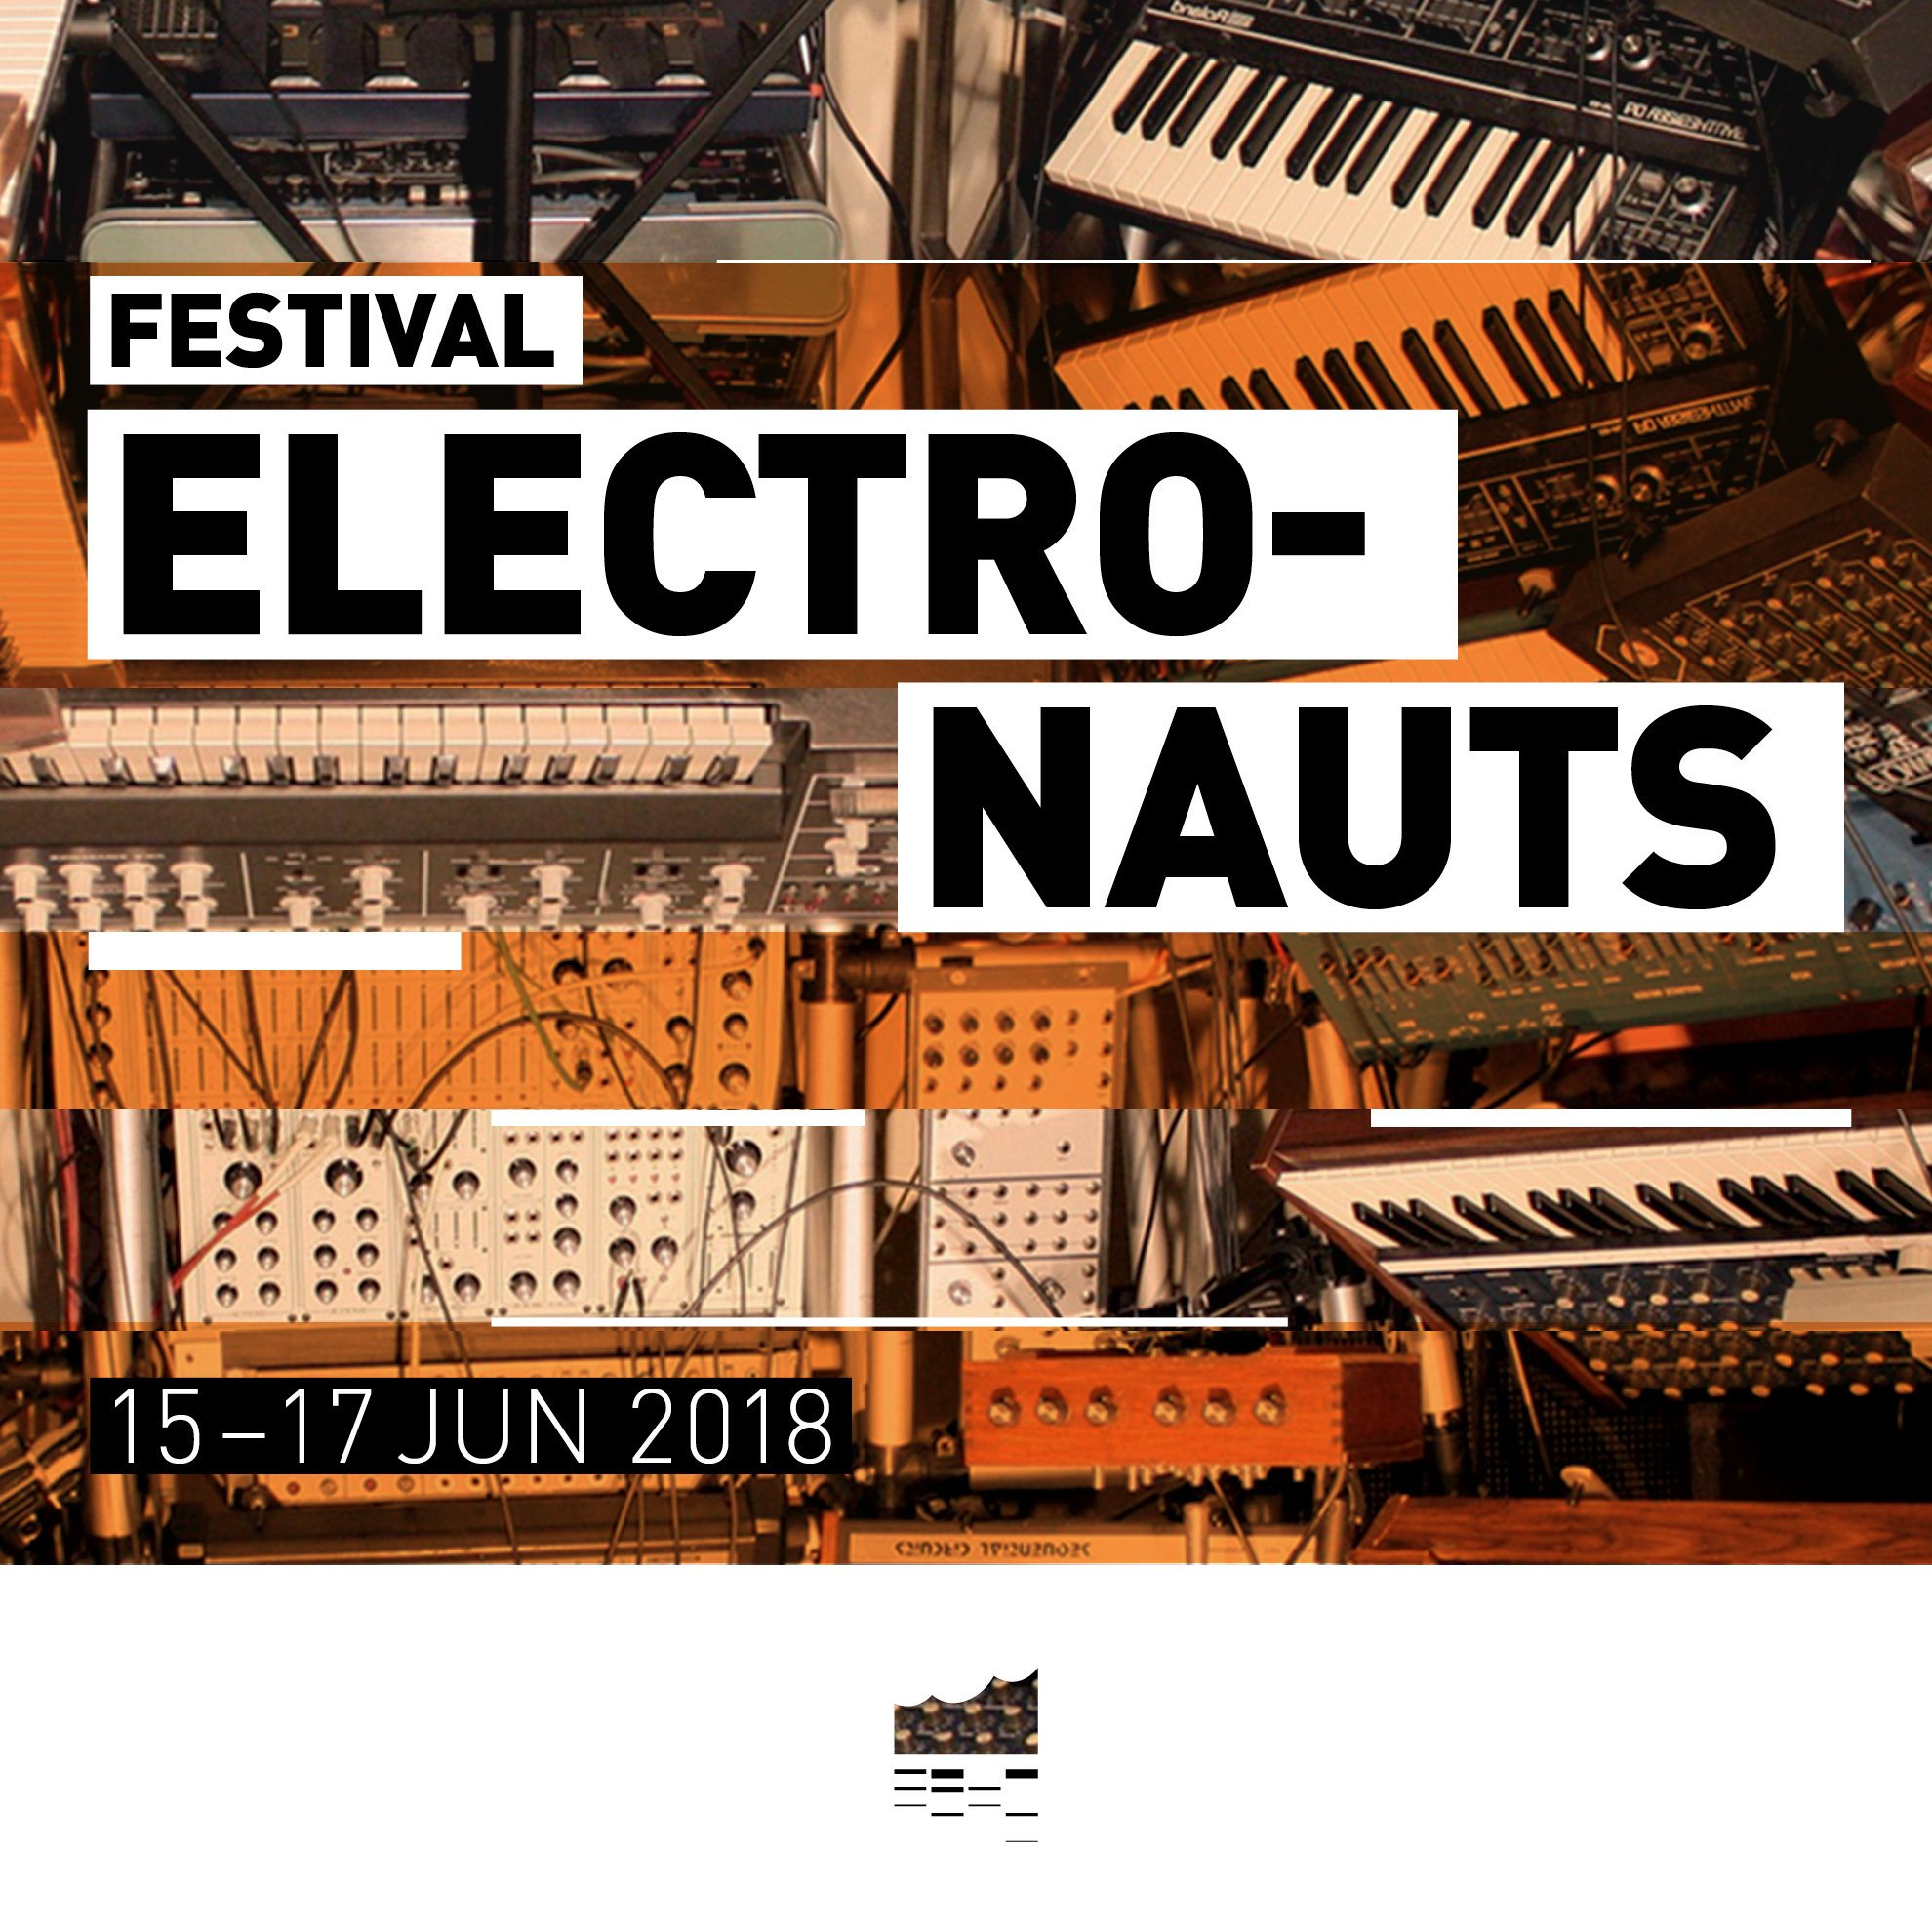 Reloaded twaddle – RT @elbphilharmonie: Back to school: it's all about analogue synthesizers in his...